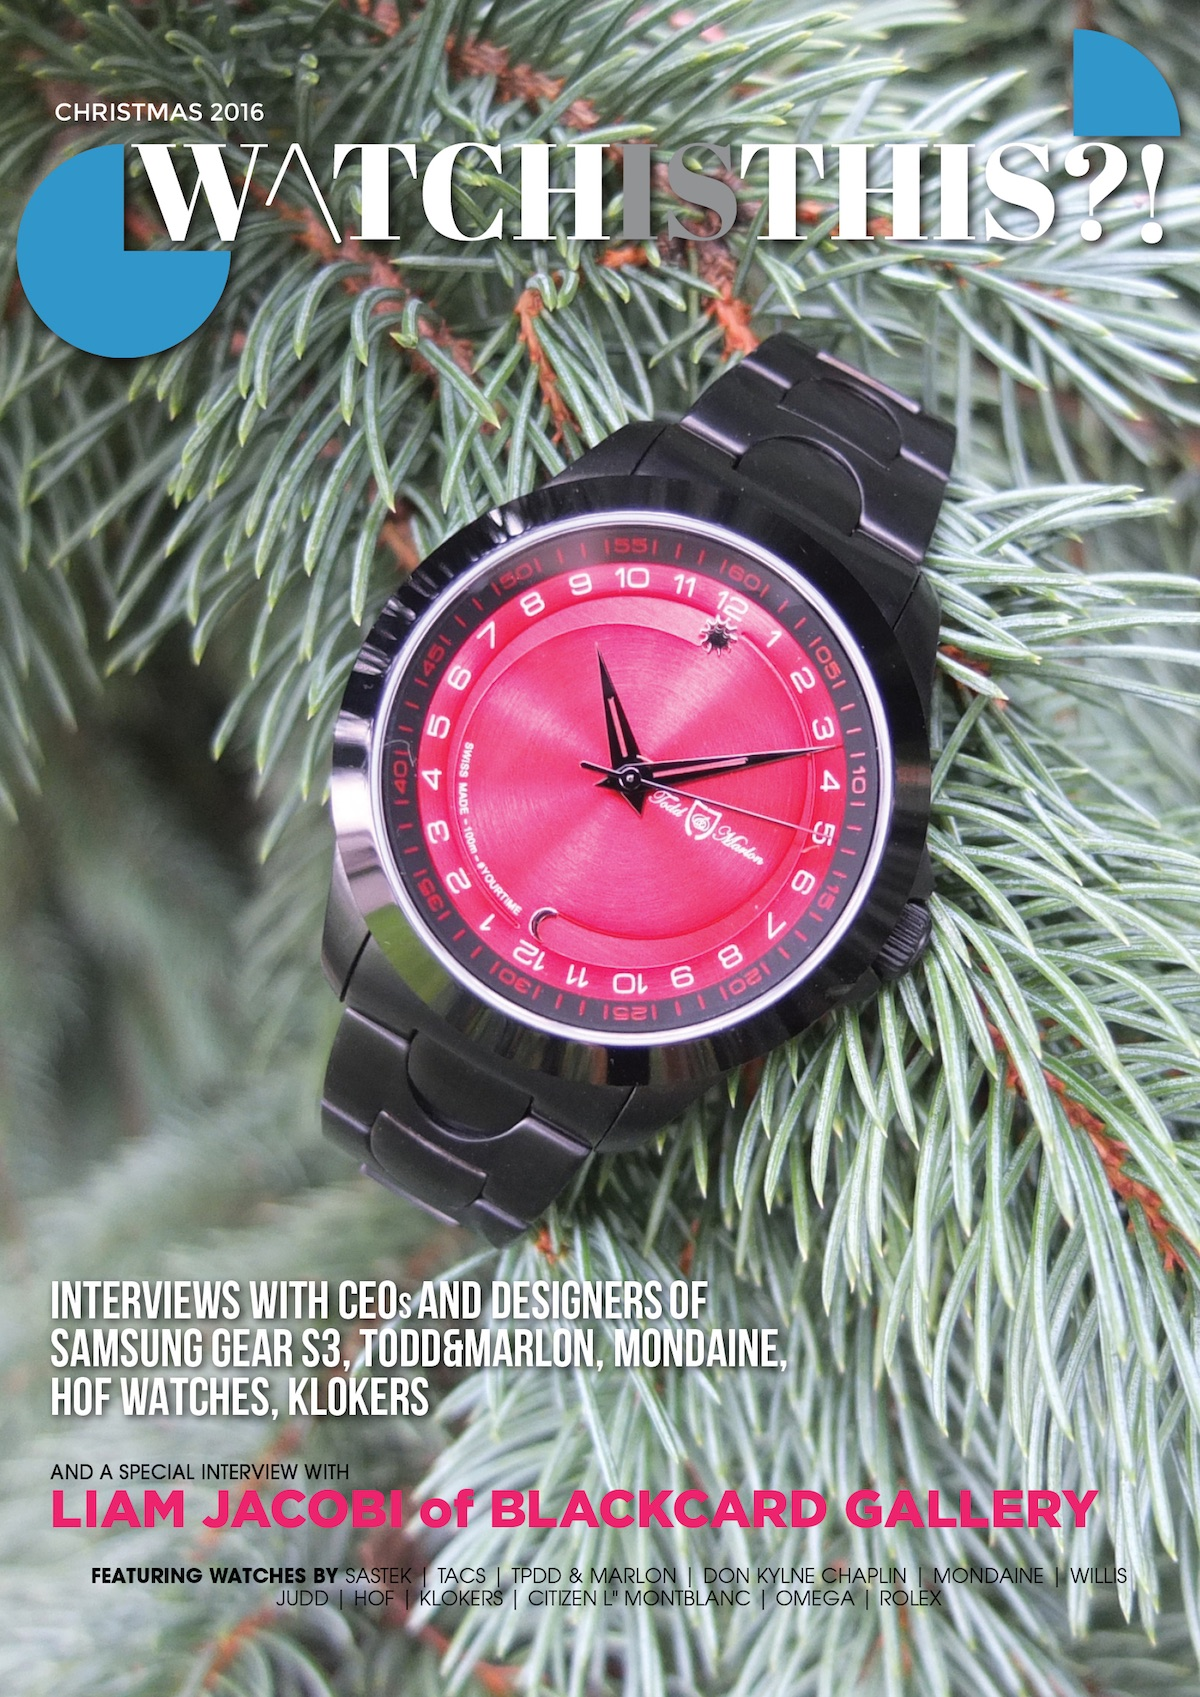 Watchisthis?! Christmas Issue Out Now!